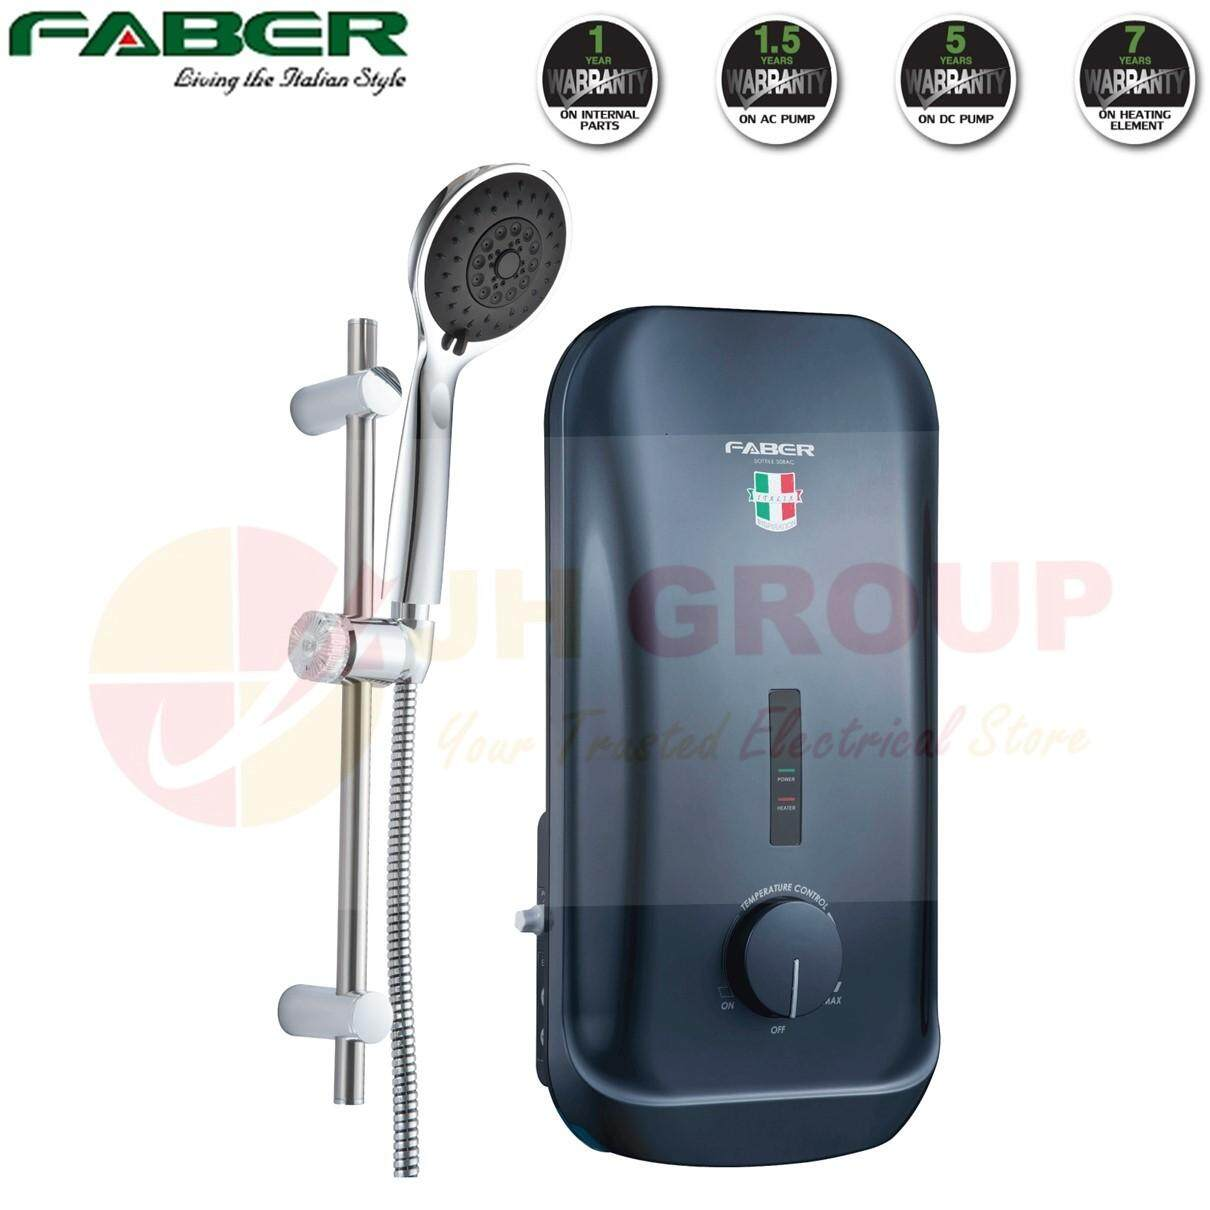 (AUTHORISED DEALER) FABER FWH SOTTILE 308AC(GR) 3.6kW AC PUMP WATER HEATER with CHROME SLIDING SHOWER HEAD